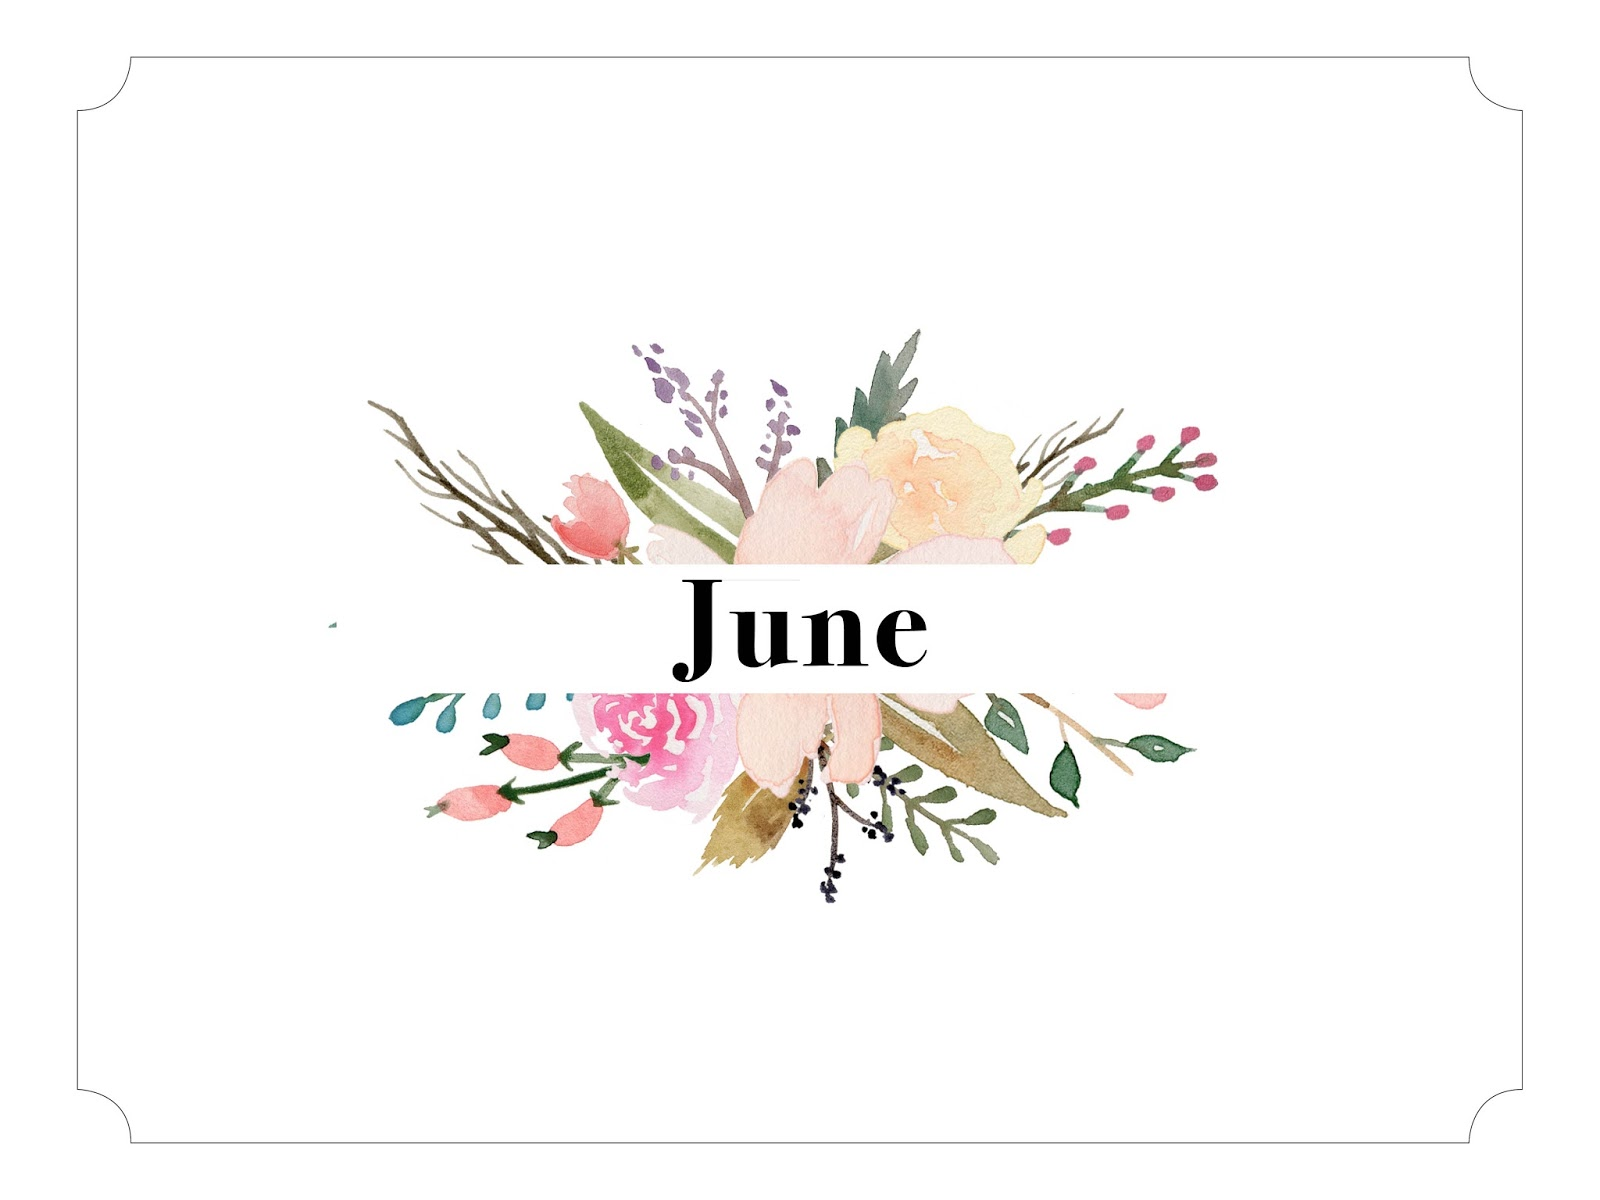 Calendar Background June : June printable calendar and backgrounds oh hey hannah